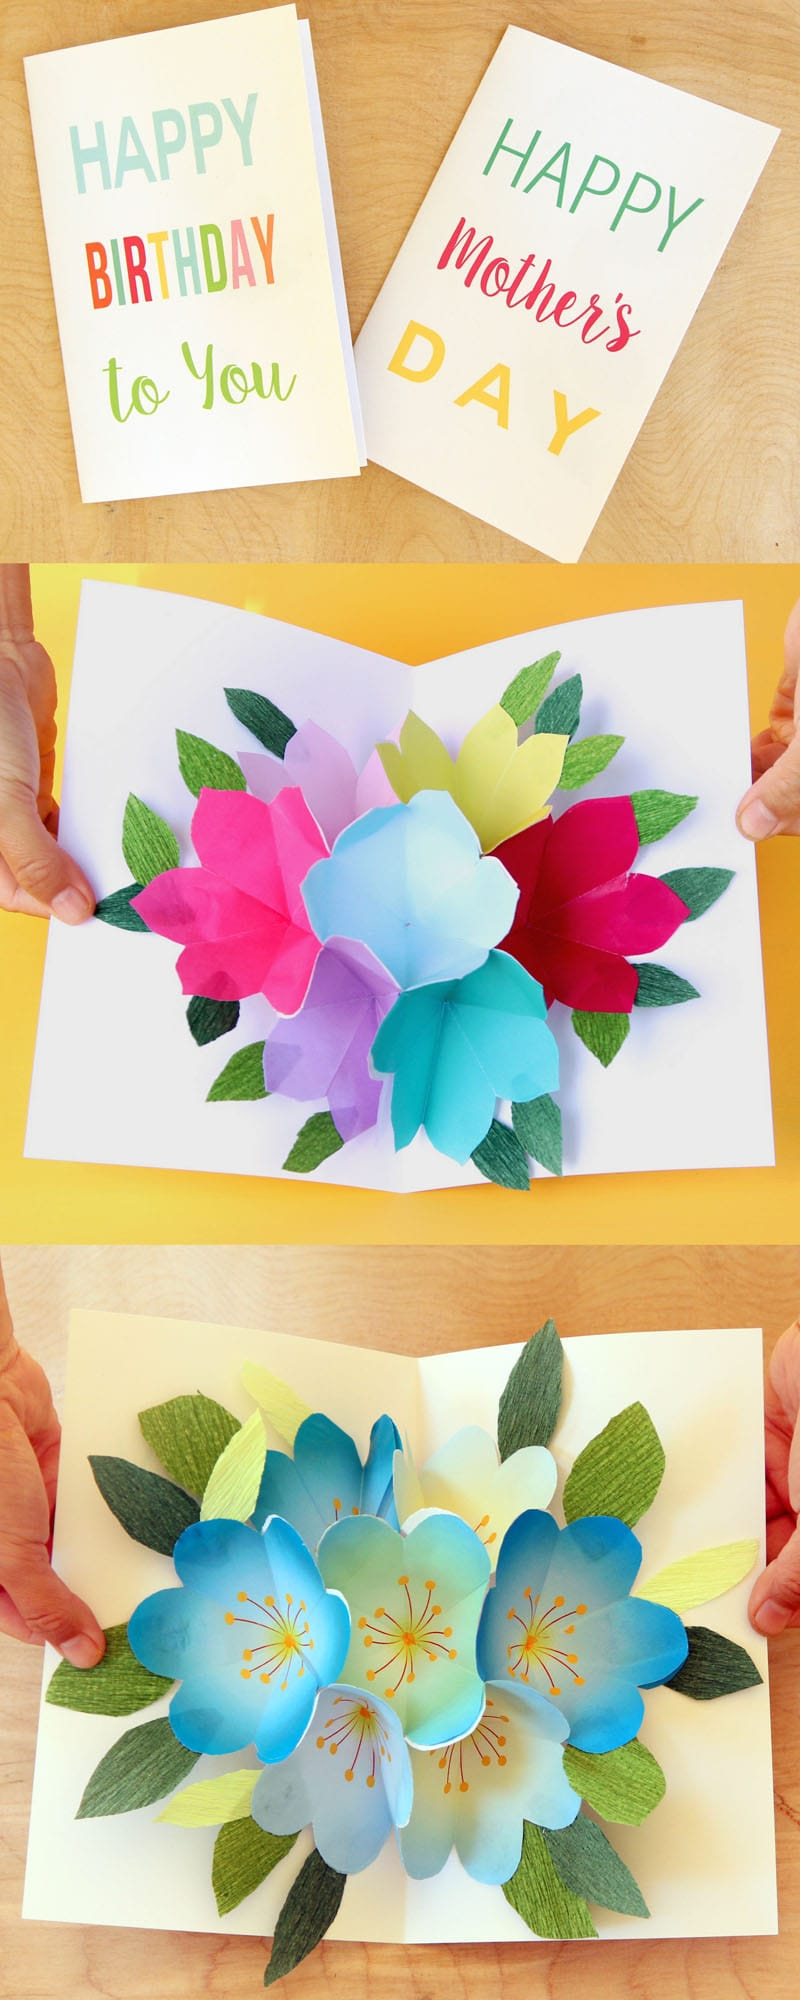 Free Printable Happy Birthday Card With Pop Up Bouquet - A Piece Of - Free Printable Pop Up Card Templates